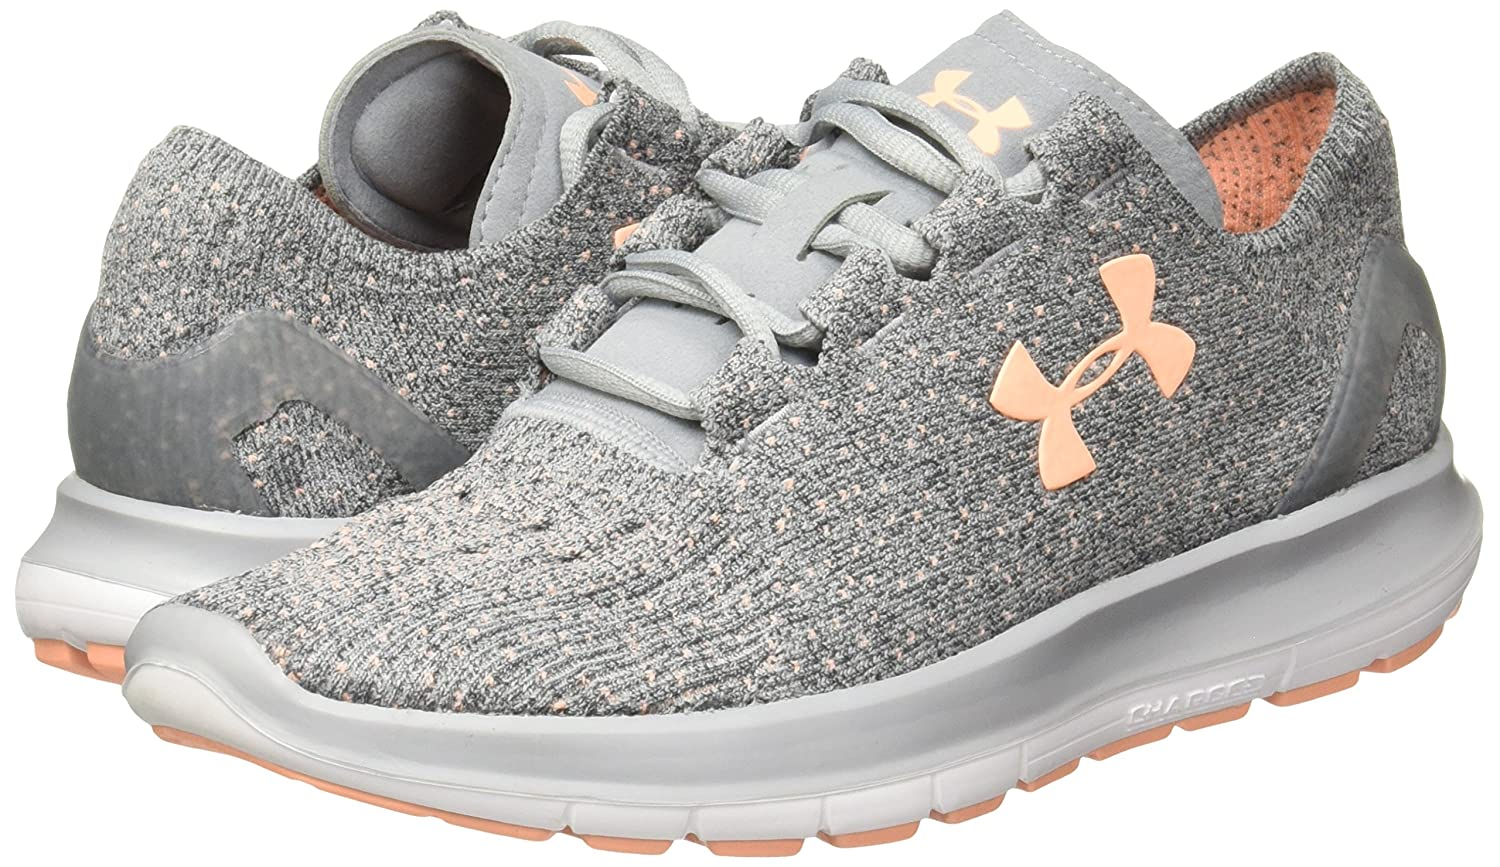 Under Armour Women's Speedform Slingride Tri Running Shoe, Overcast Gray/Glacier B(M) Gray/Marlin Blue B01GSRL50W 6 B(M) Gray/Glacier US|Overcast Gray/White/Playful Peach fca738